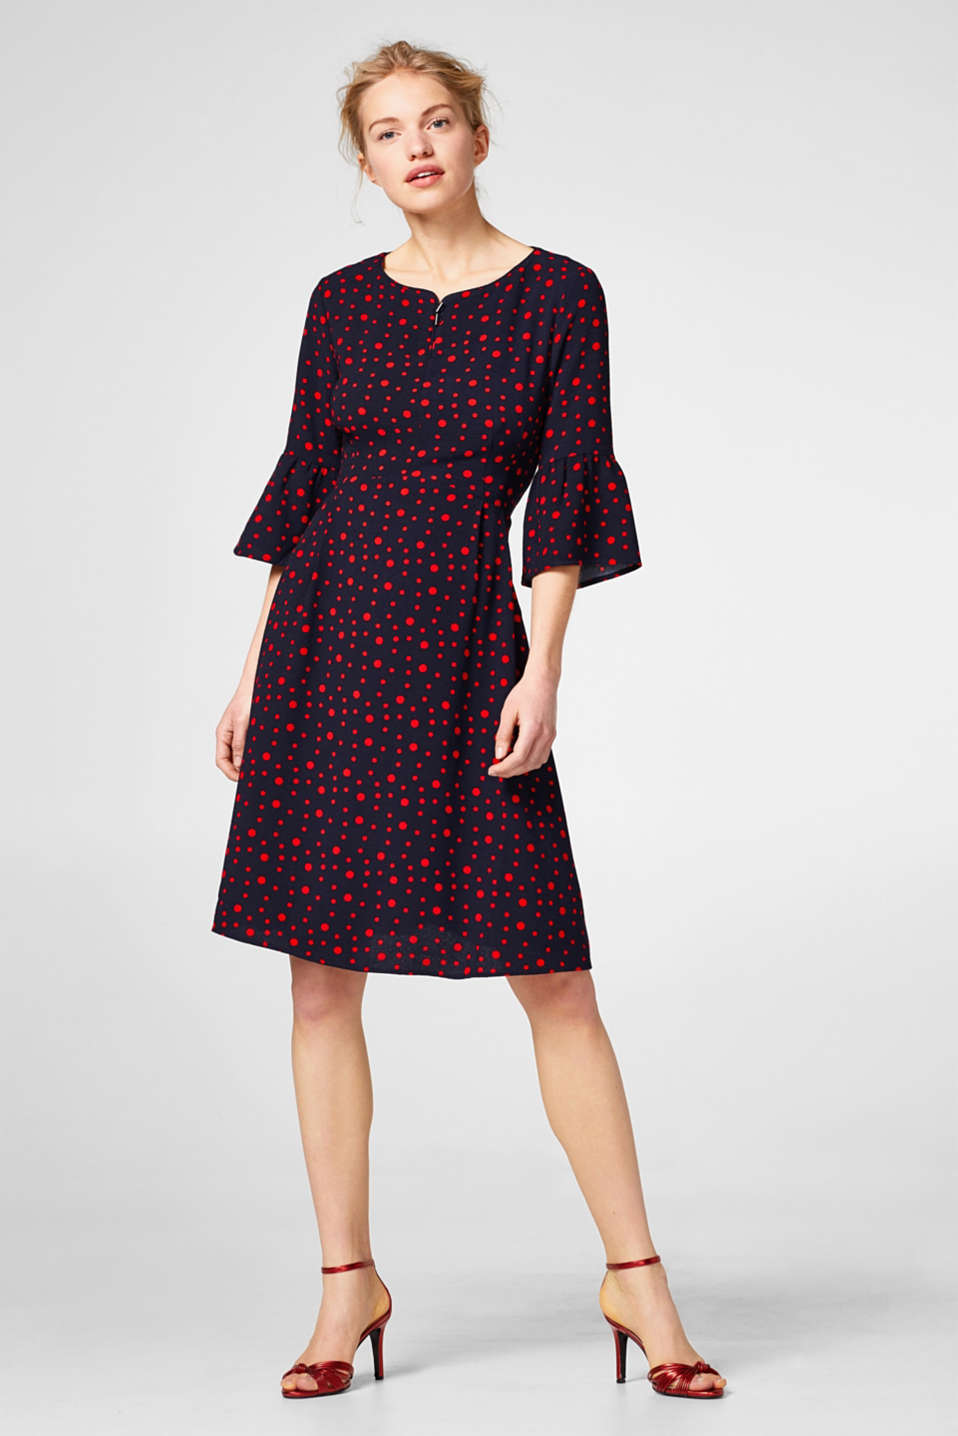 Flowing dress with polka dots